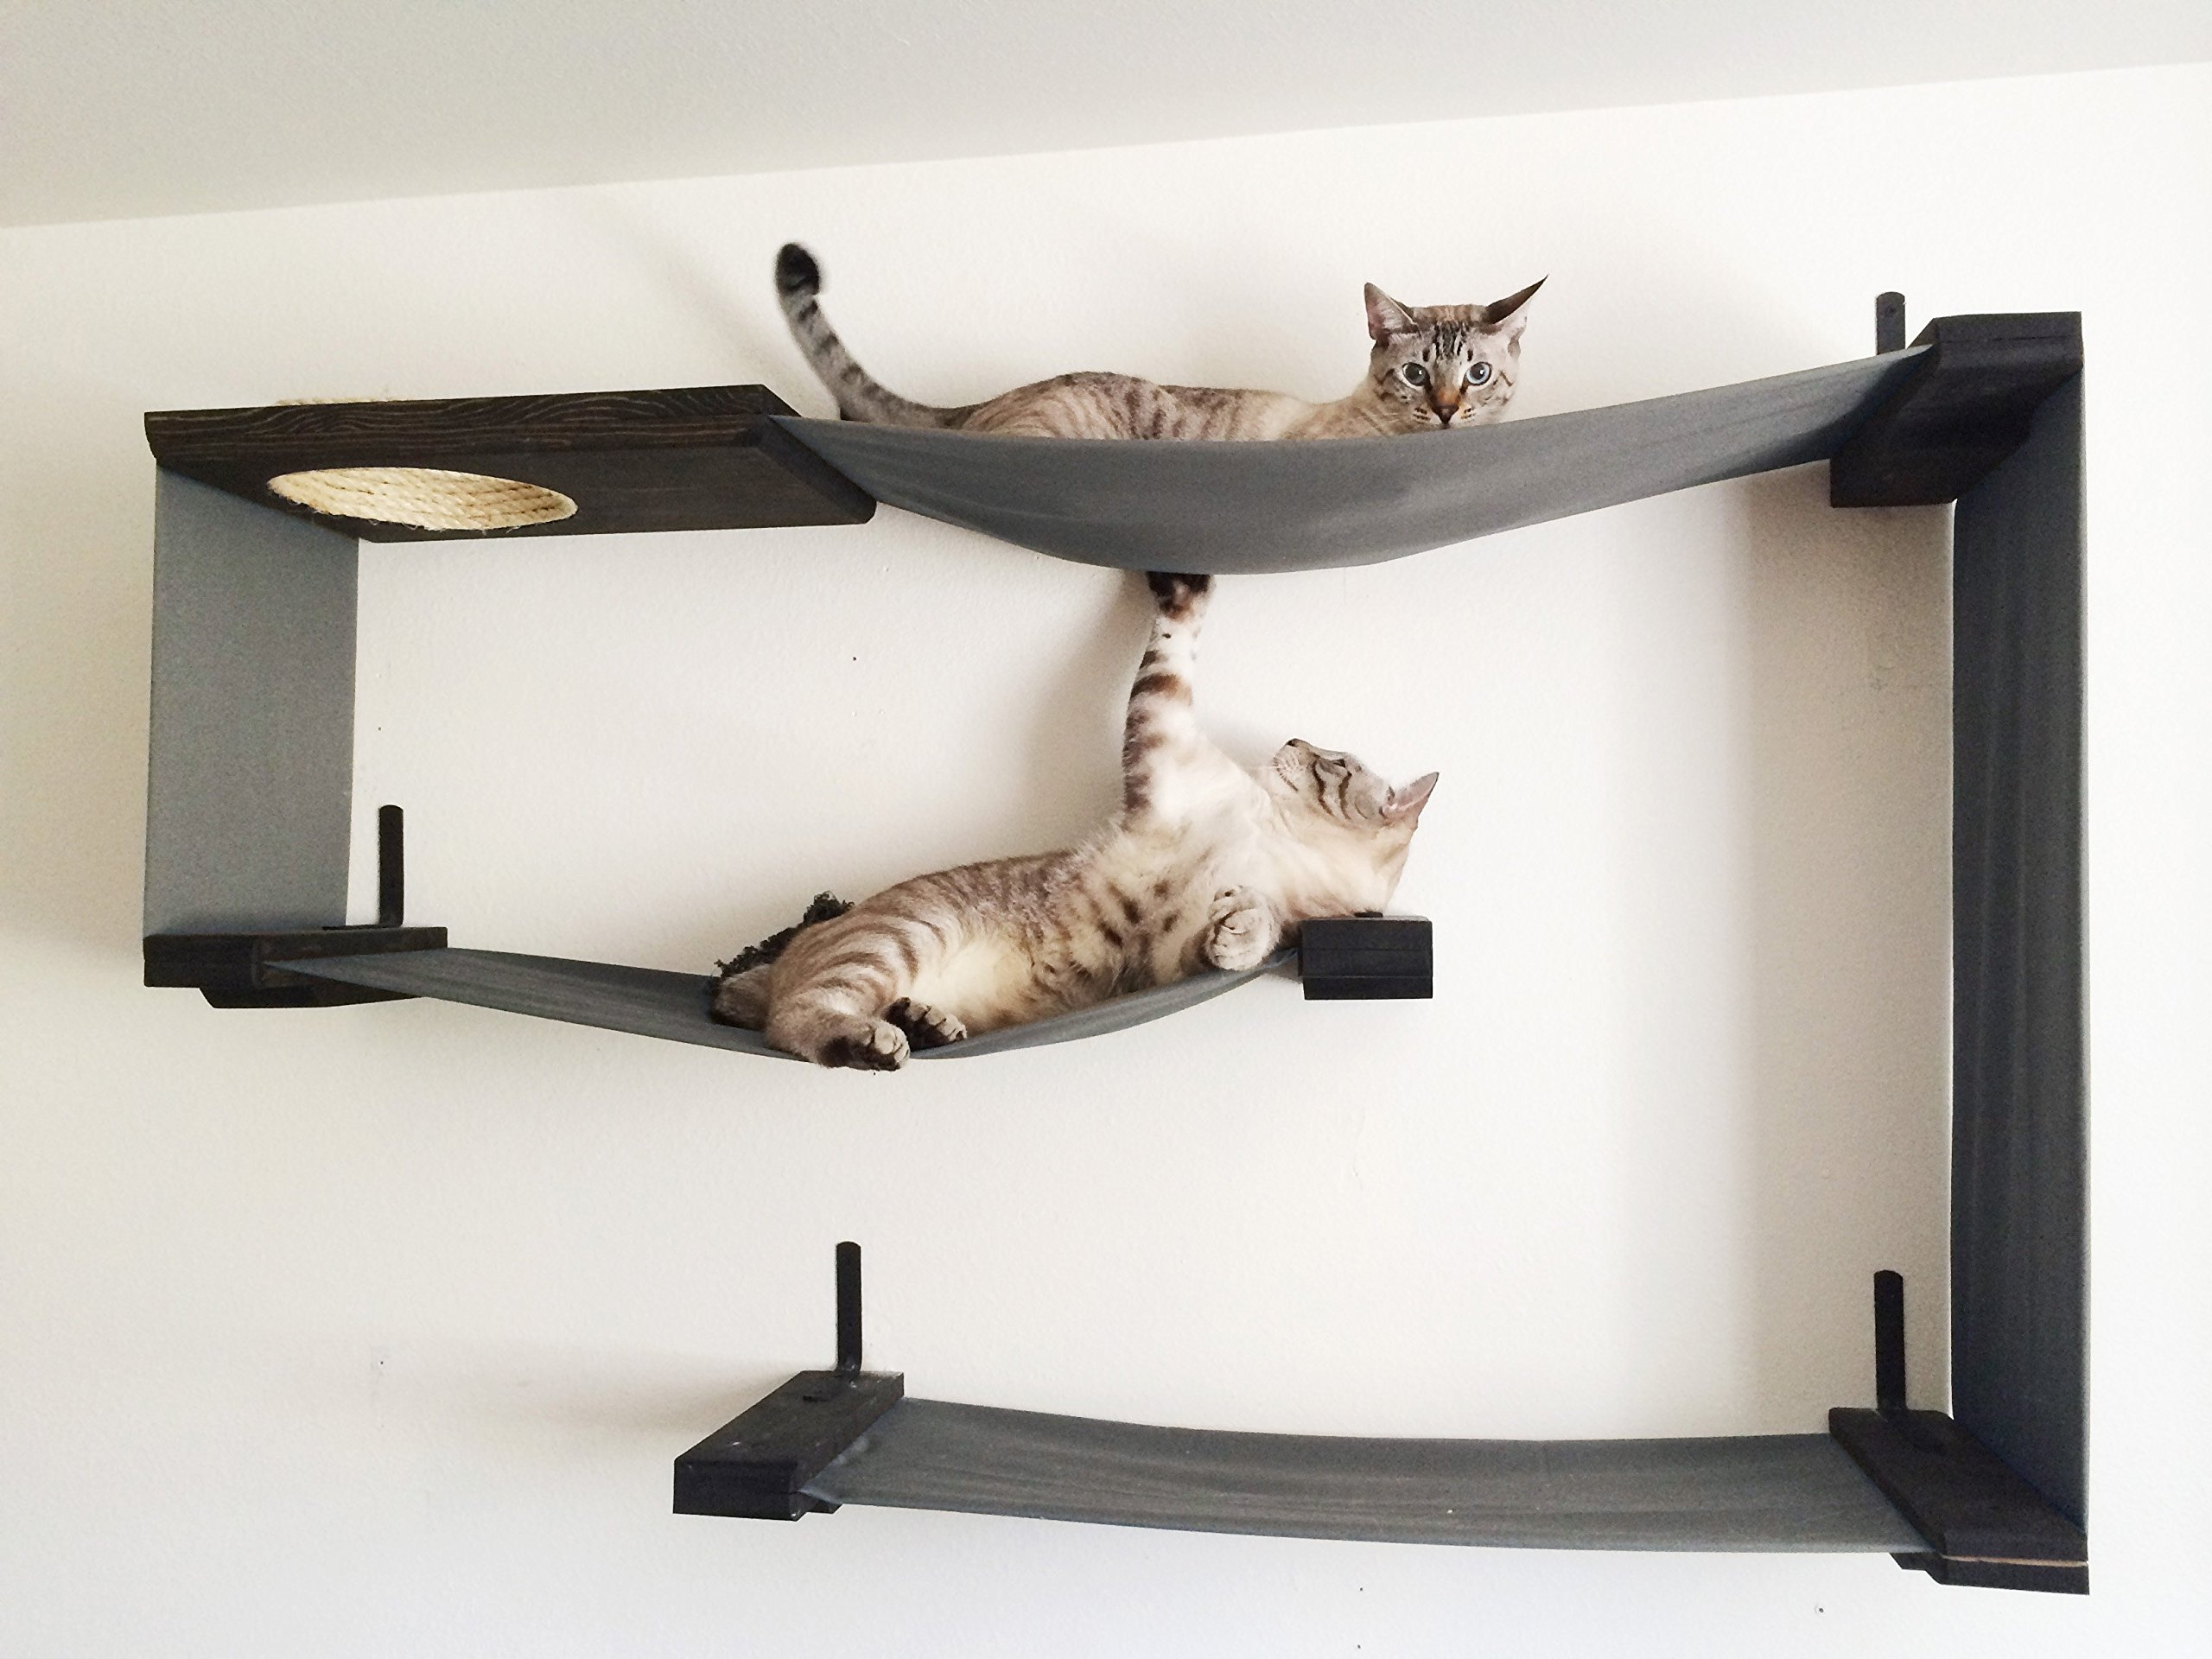 CatastrophiCreations  Fabric Cat Maze Multiple-Level Hammock Lounger Wall-Mounted Cat Tree